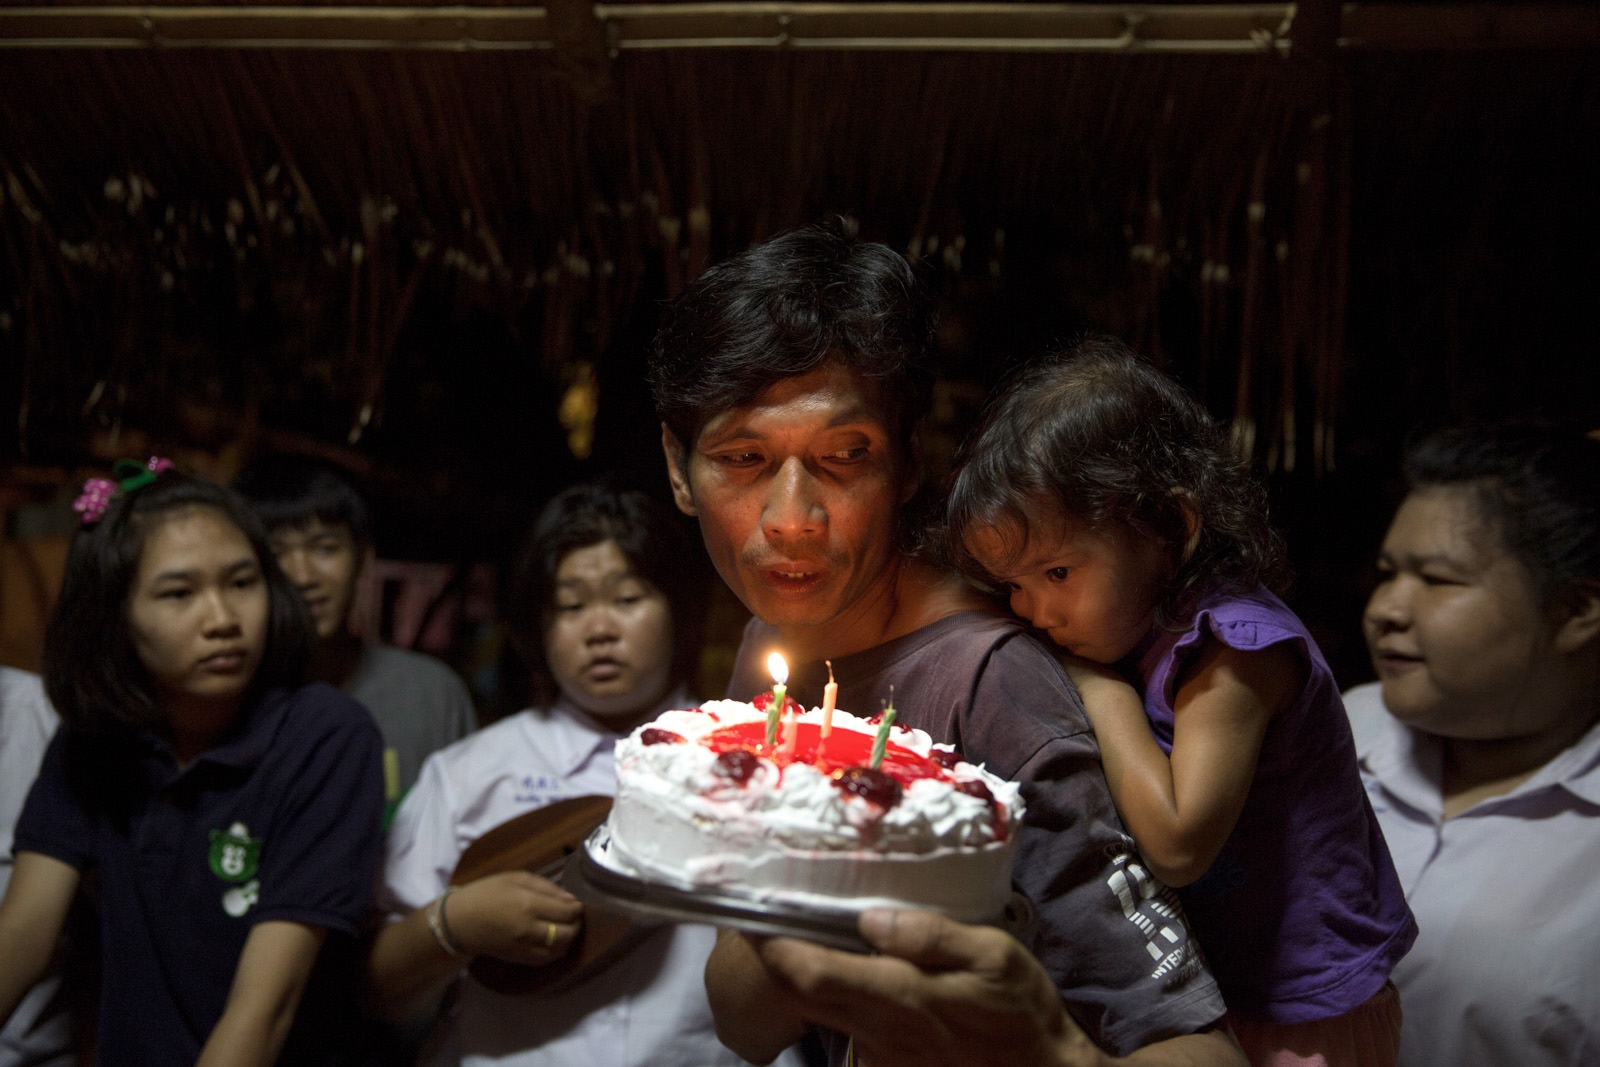 Por Mai holds a cake for his daughters birthday during a family celebration in Na Nong Bong village.